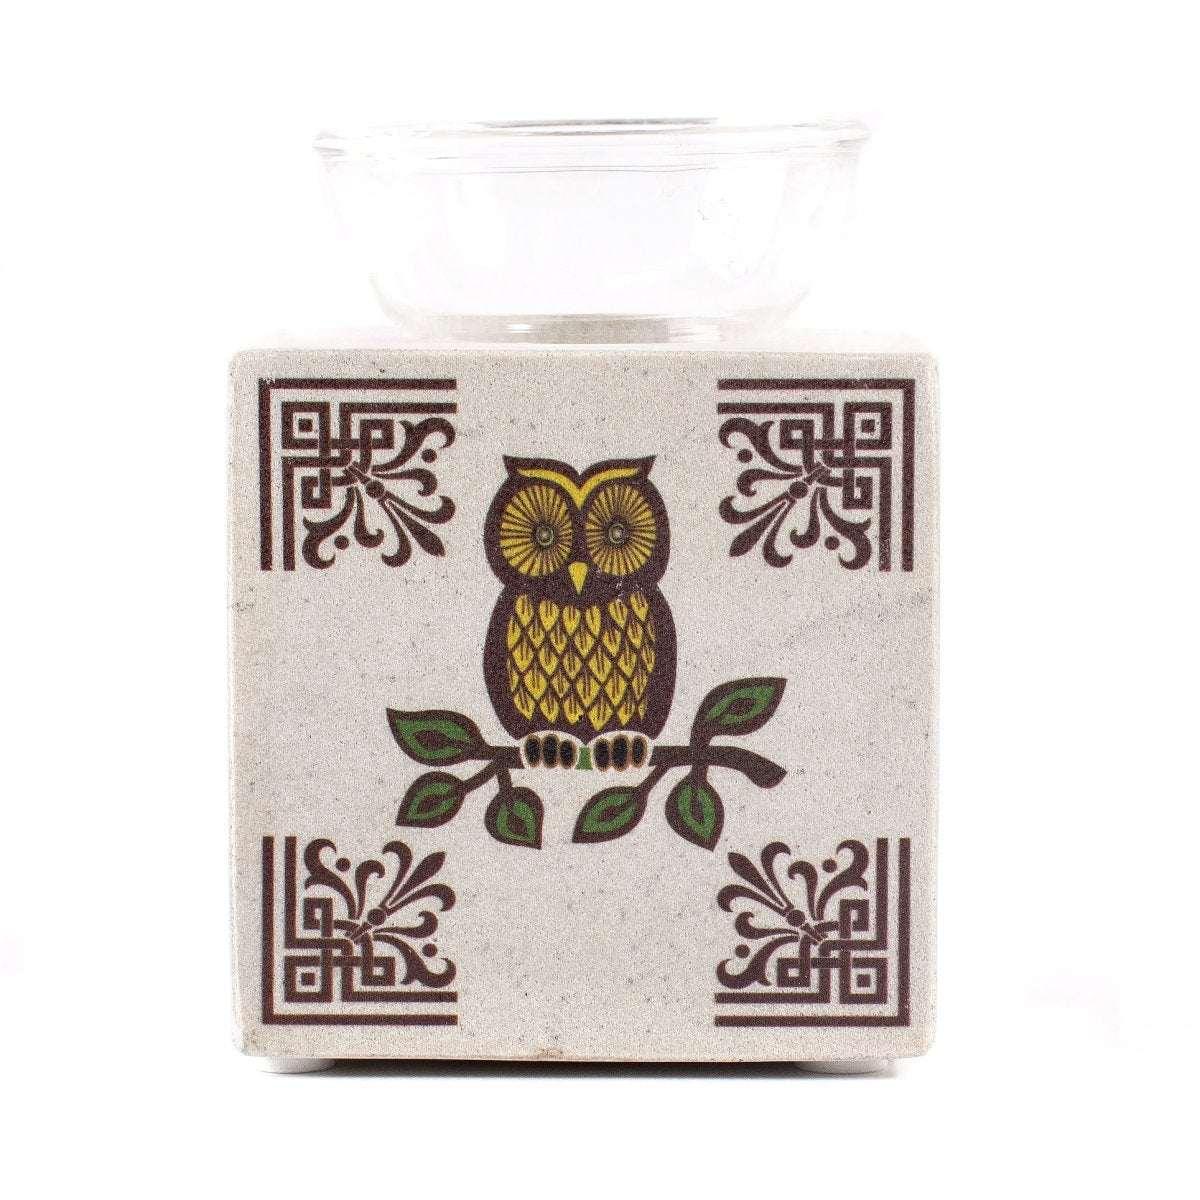 White Box Soapstone Oil Burner with Owl Design - Mystic Moments UK